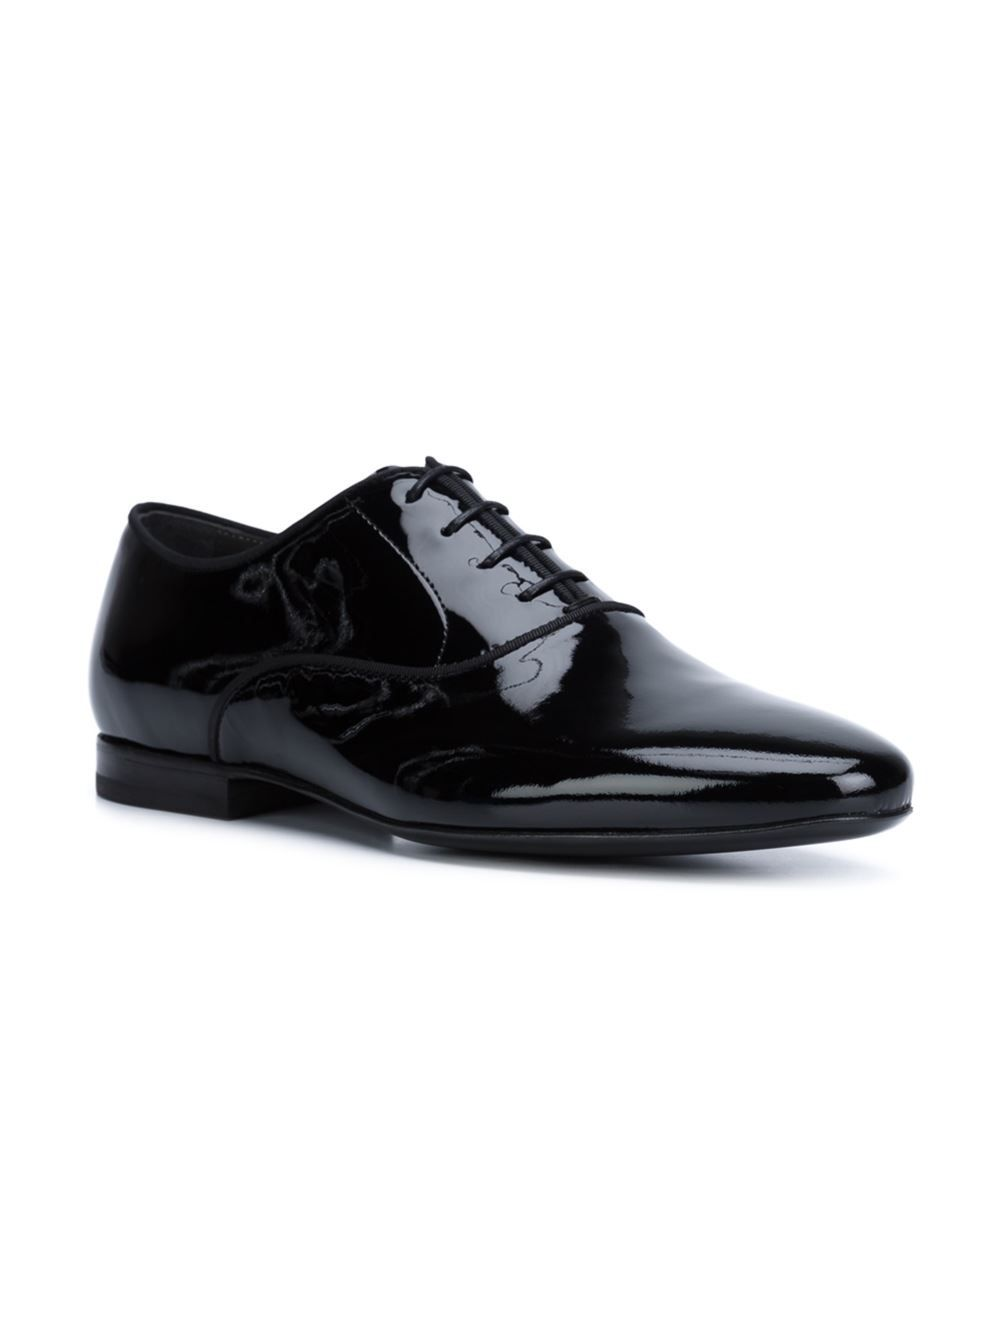 outlet really official site cheap price Lanvin classic Oxford shoes visa payment online TWS3wG